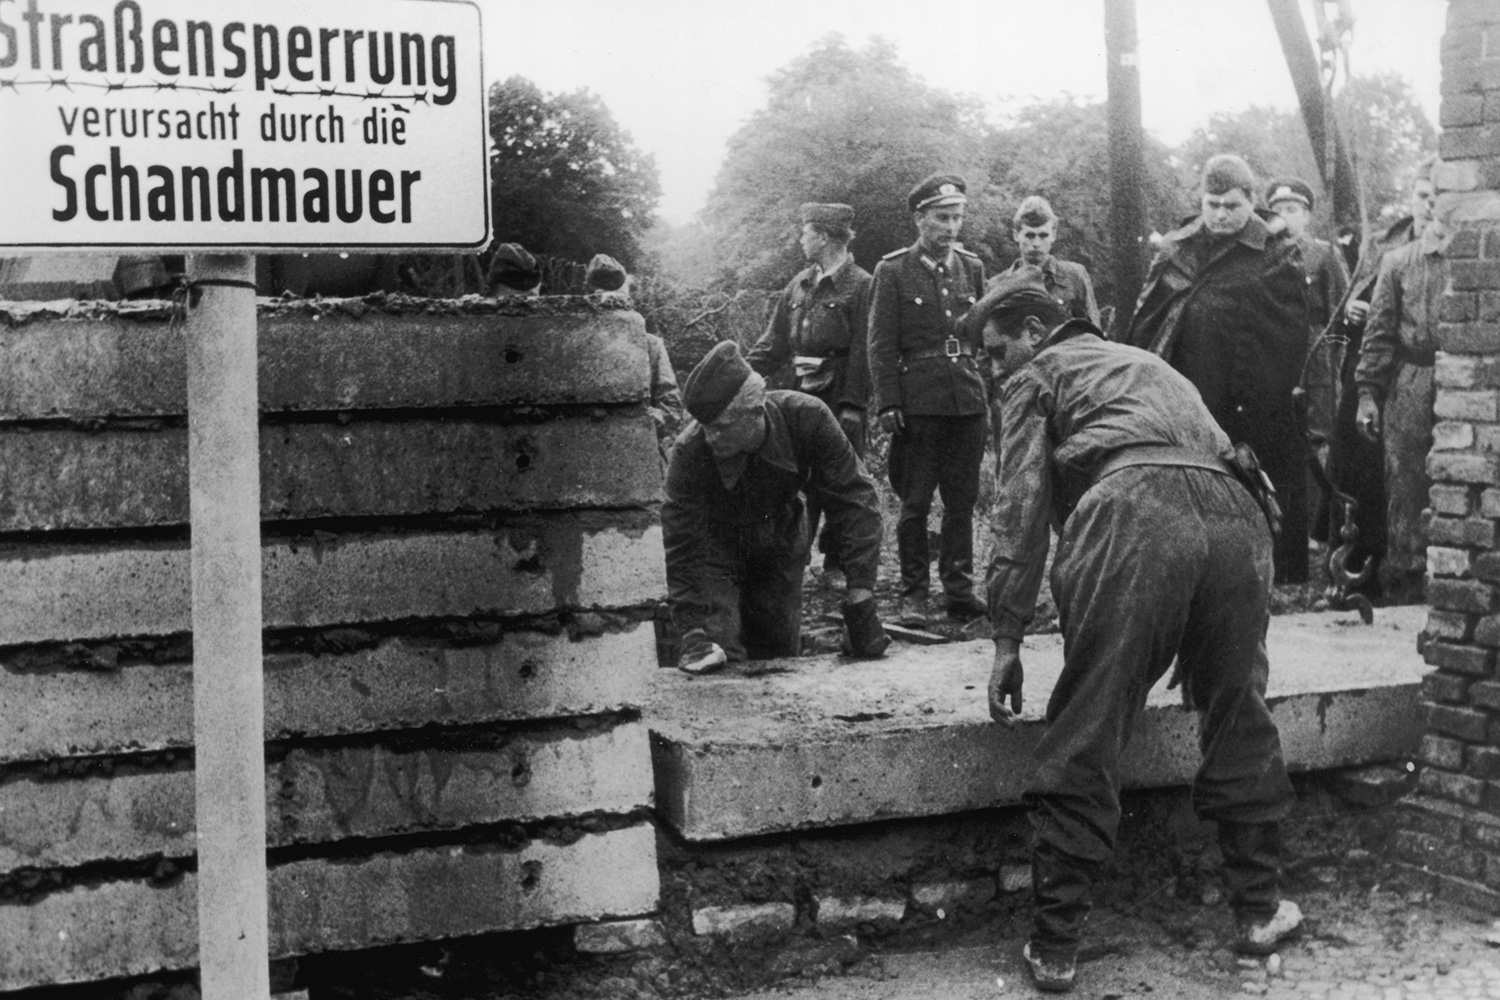 Building the Berlin Wall in Germany, black and white photograph.